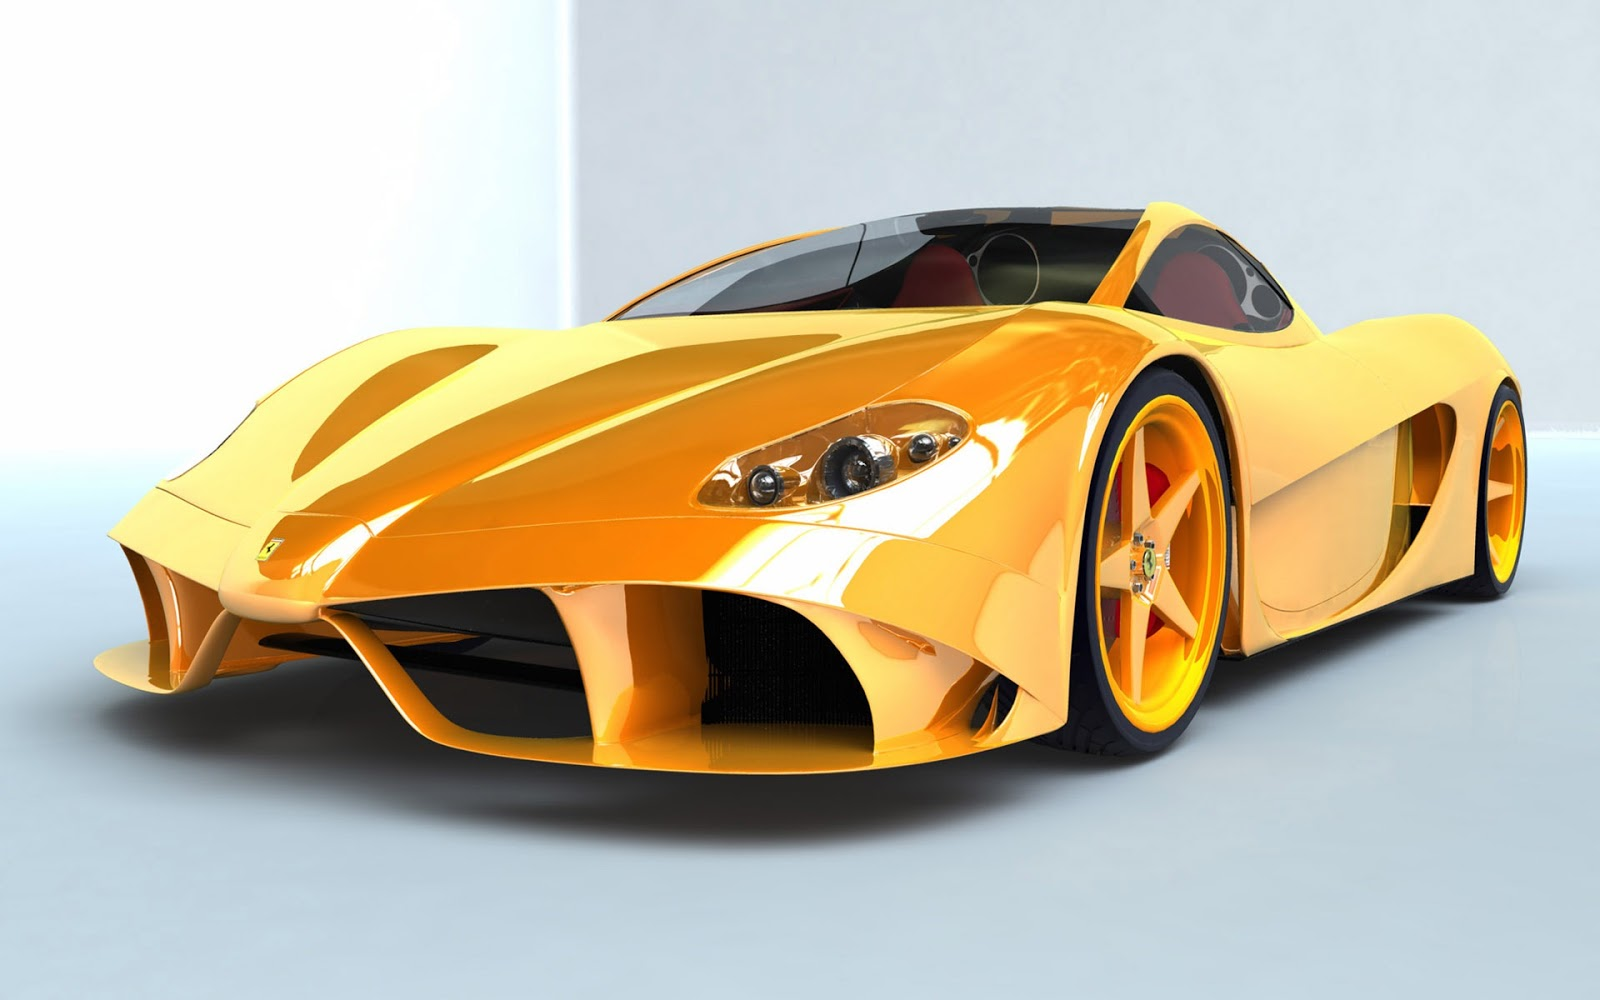 Ferrari Hd Wallpaper Cars Wallpapers